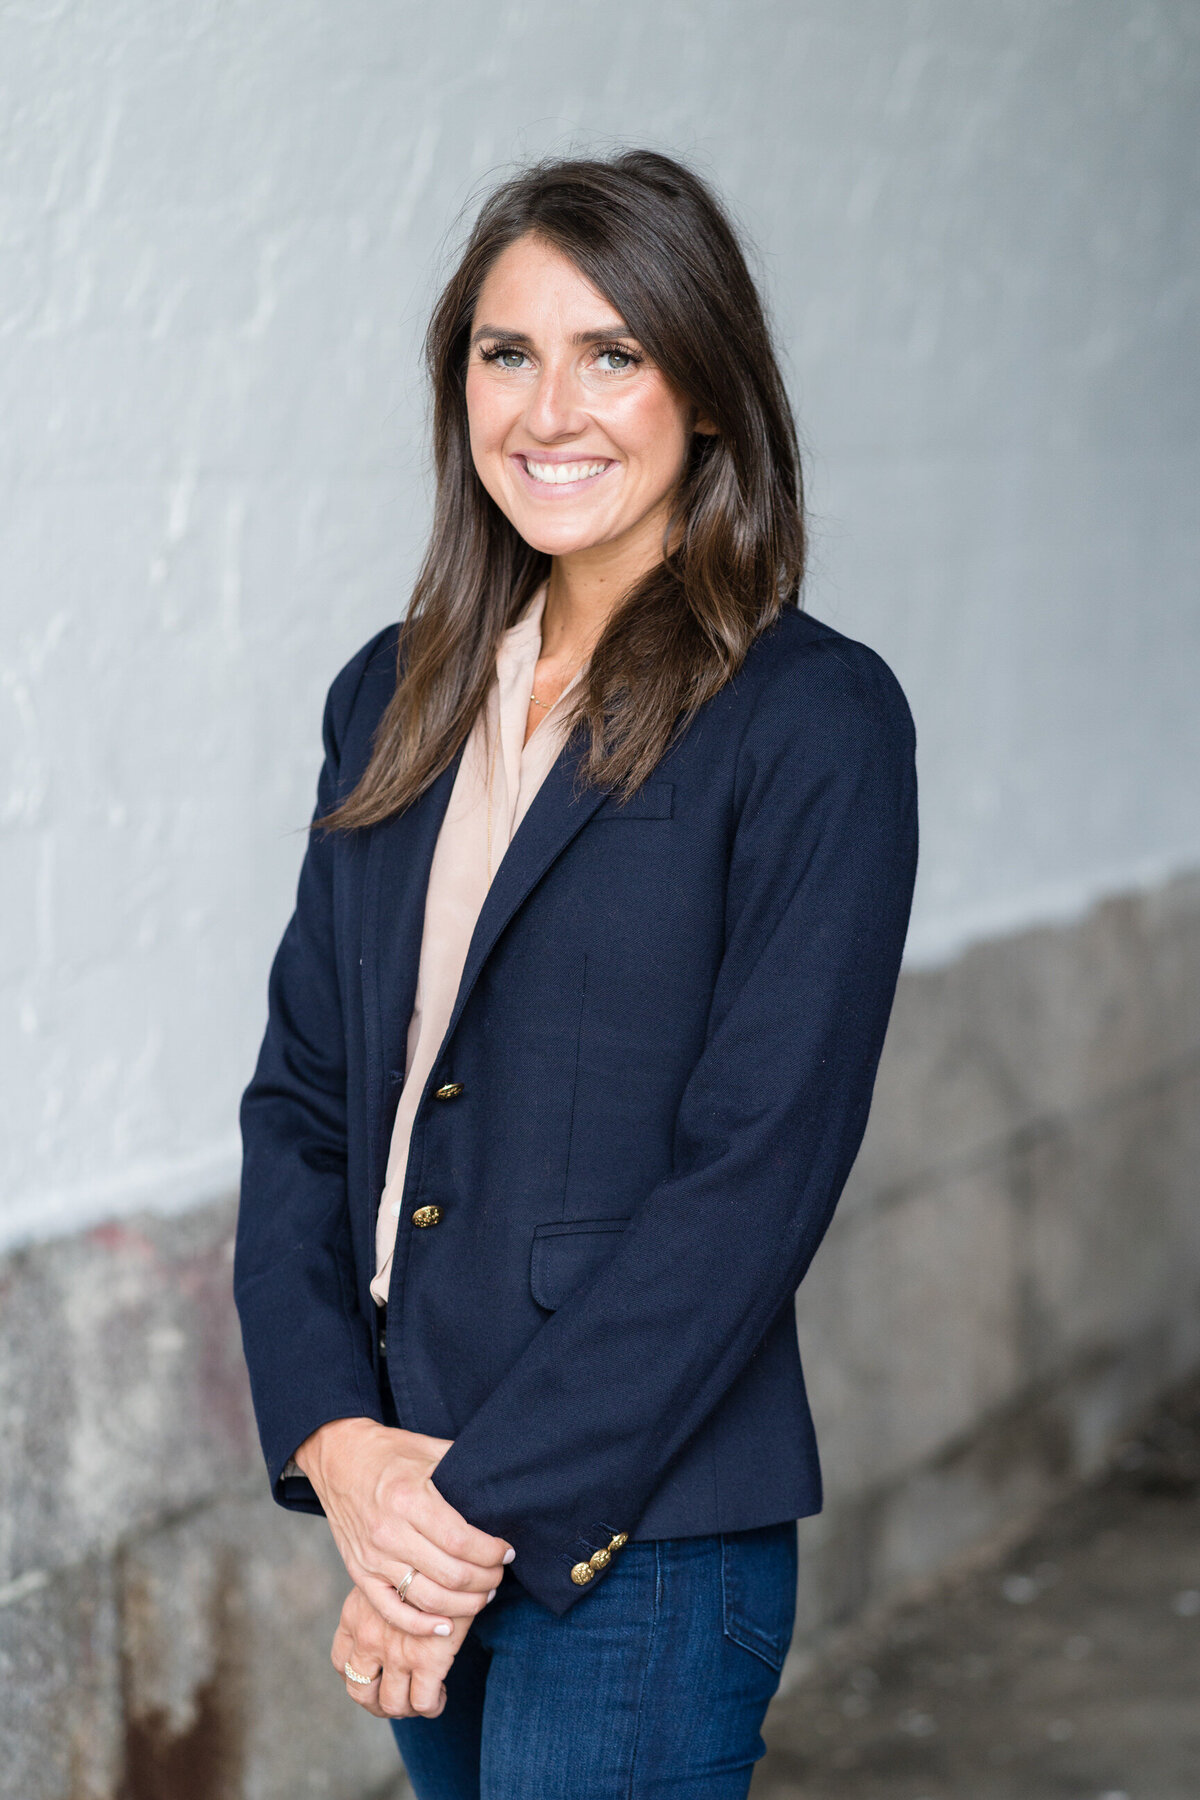 woman in a business jacket smiling